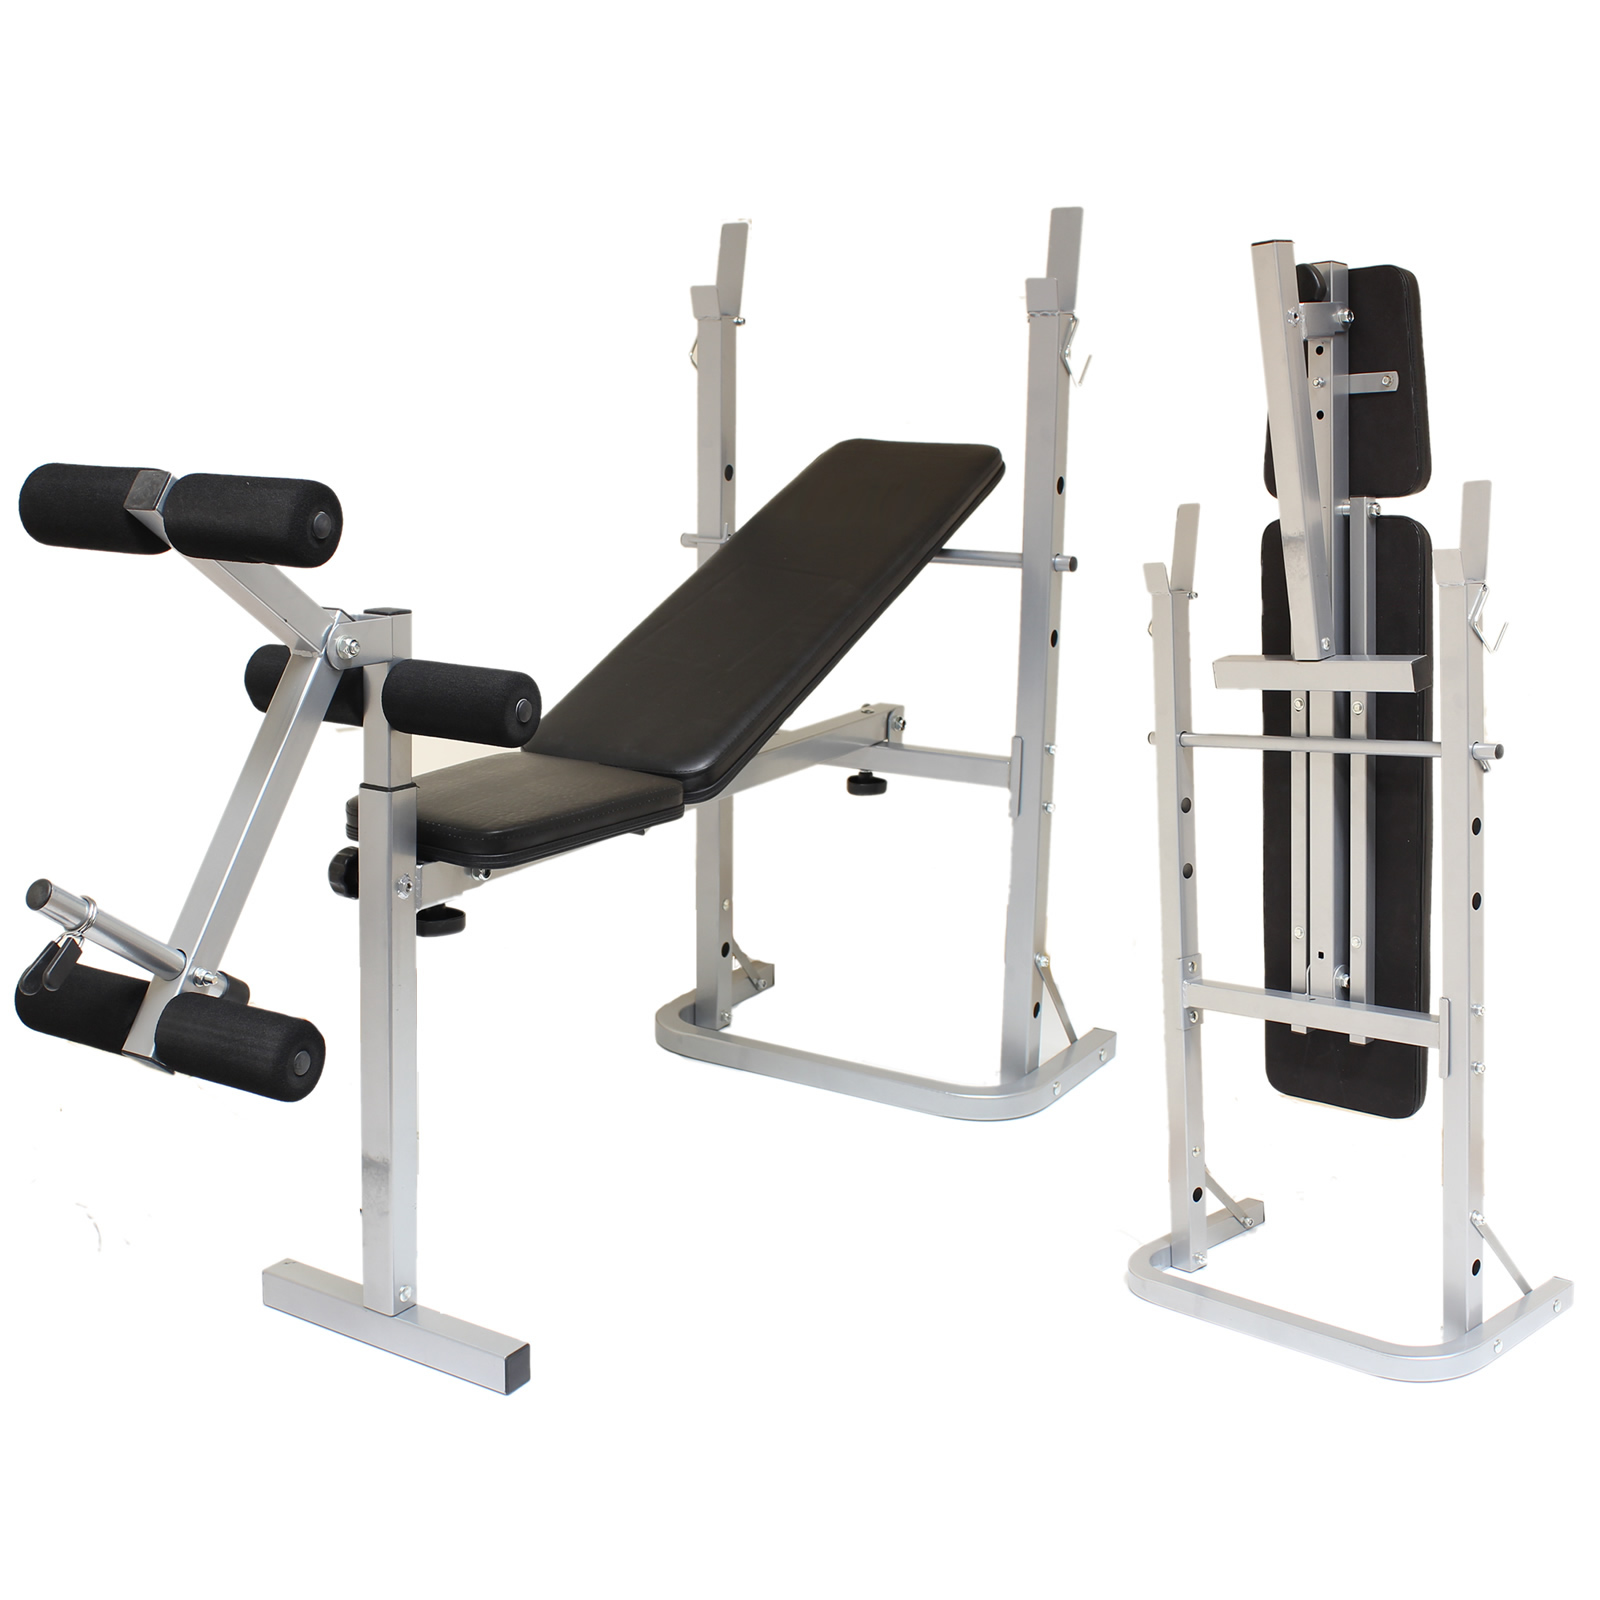 Folding weight bench home gym exercise lift lifting chest press leg fitness ebay Weight bench and weights